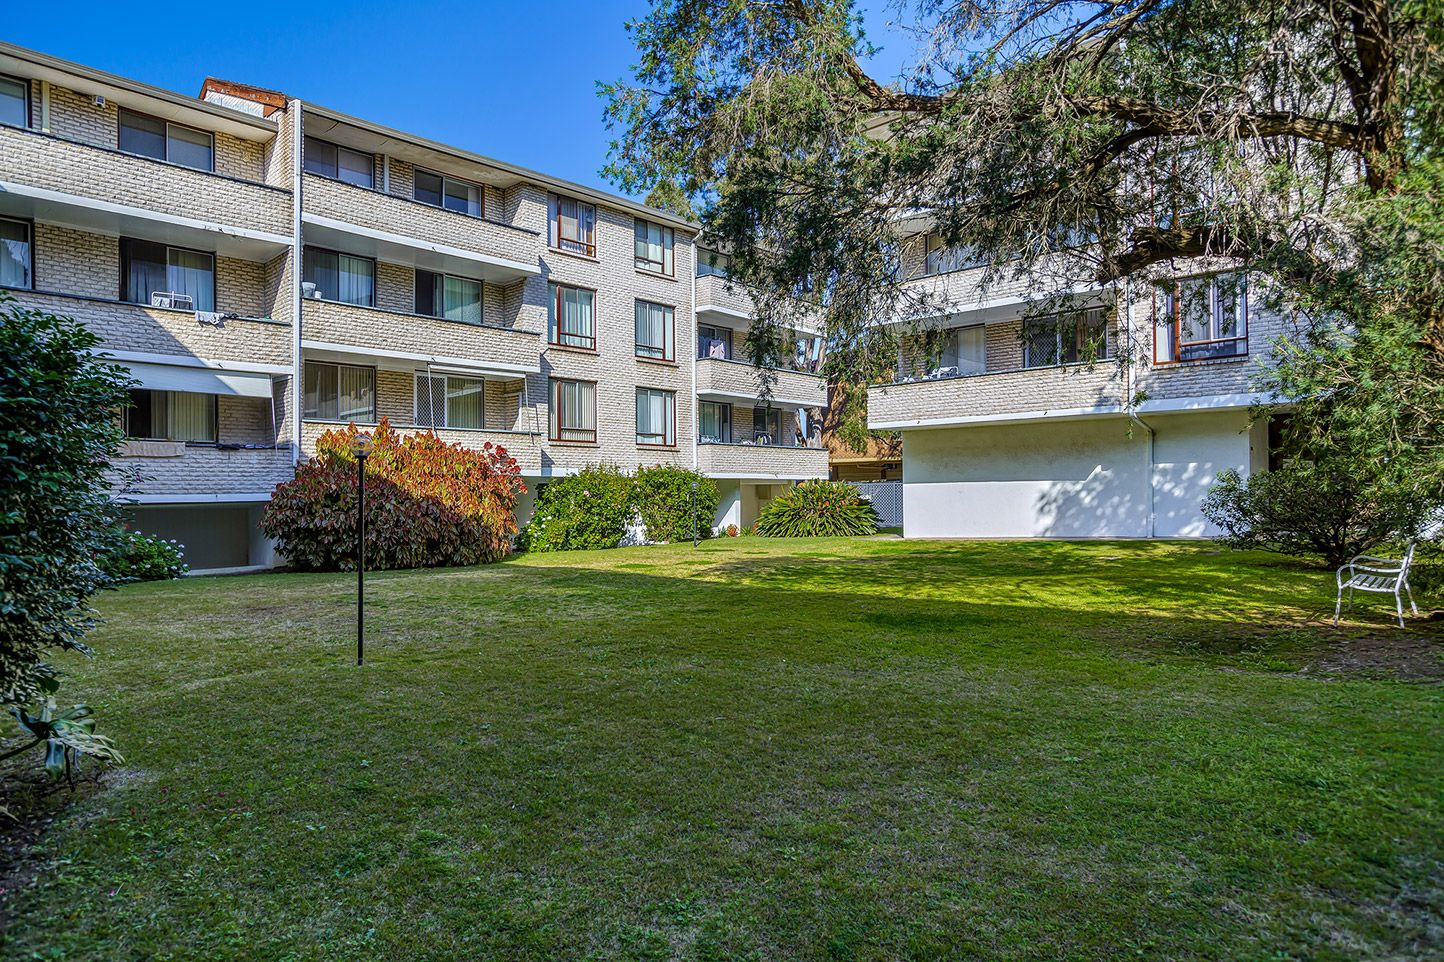 35/88-92 Albert Road, Strathfield